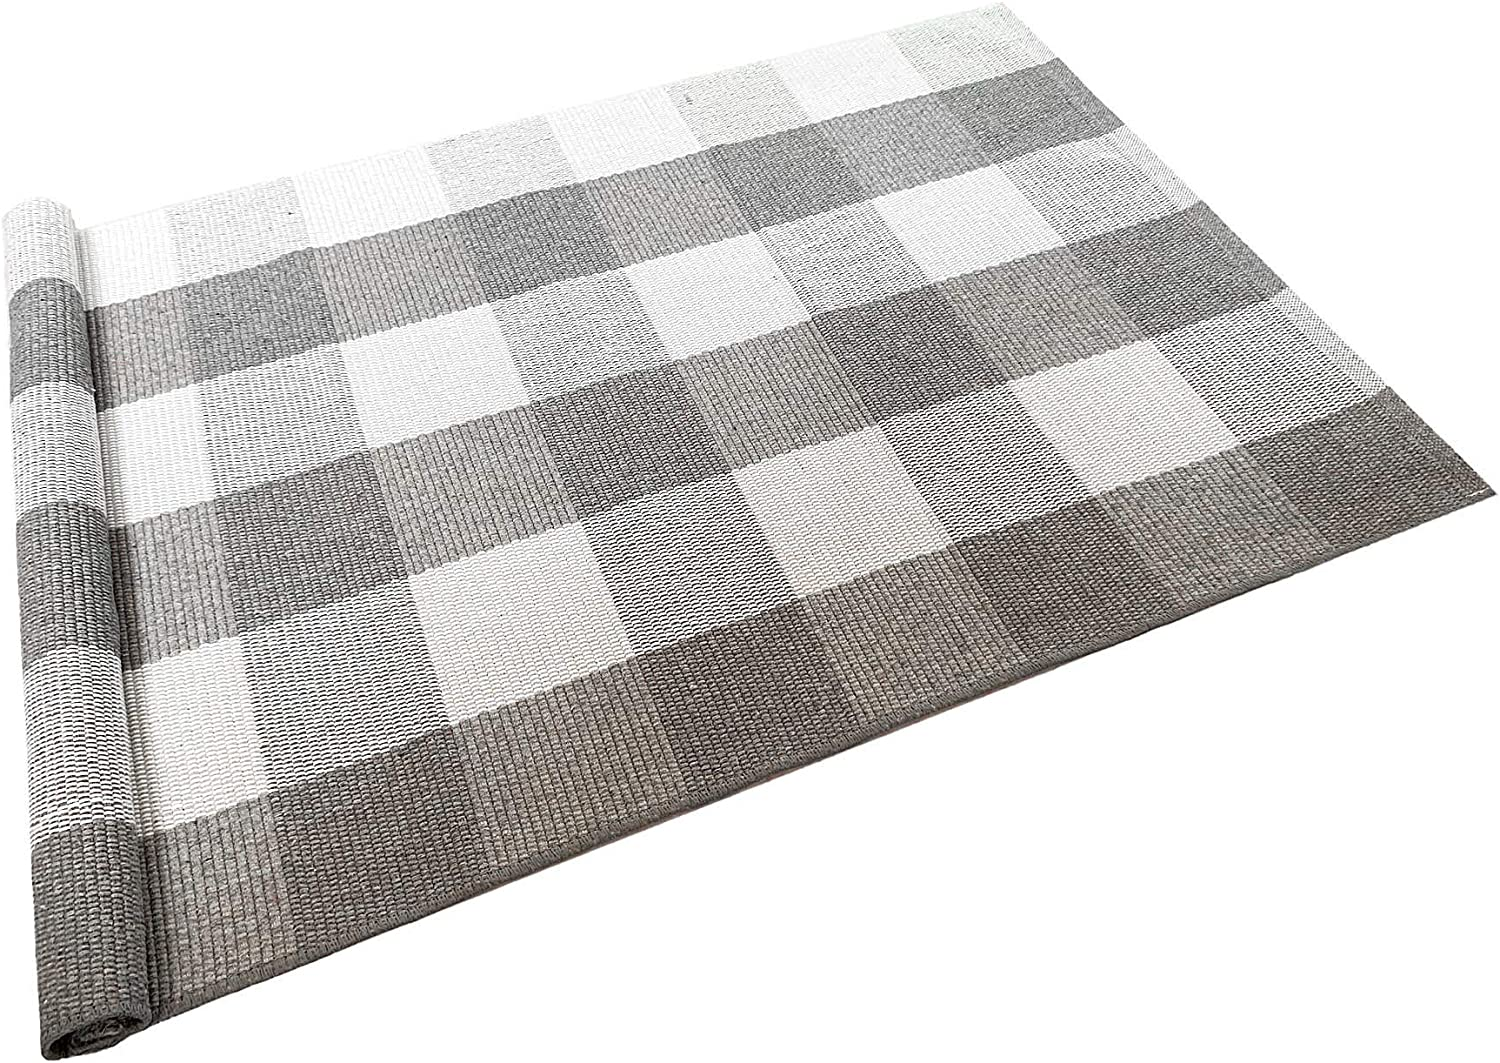 Ukeler Buffalo Check Rug 2×4- Grey and White Plaid Rugs Cotton Hand-Woven Checkered Door Mat Washable Farmhouse Rugs for Front Door/Kitchen/Laundry Room/Bathroom/Bedroom